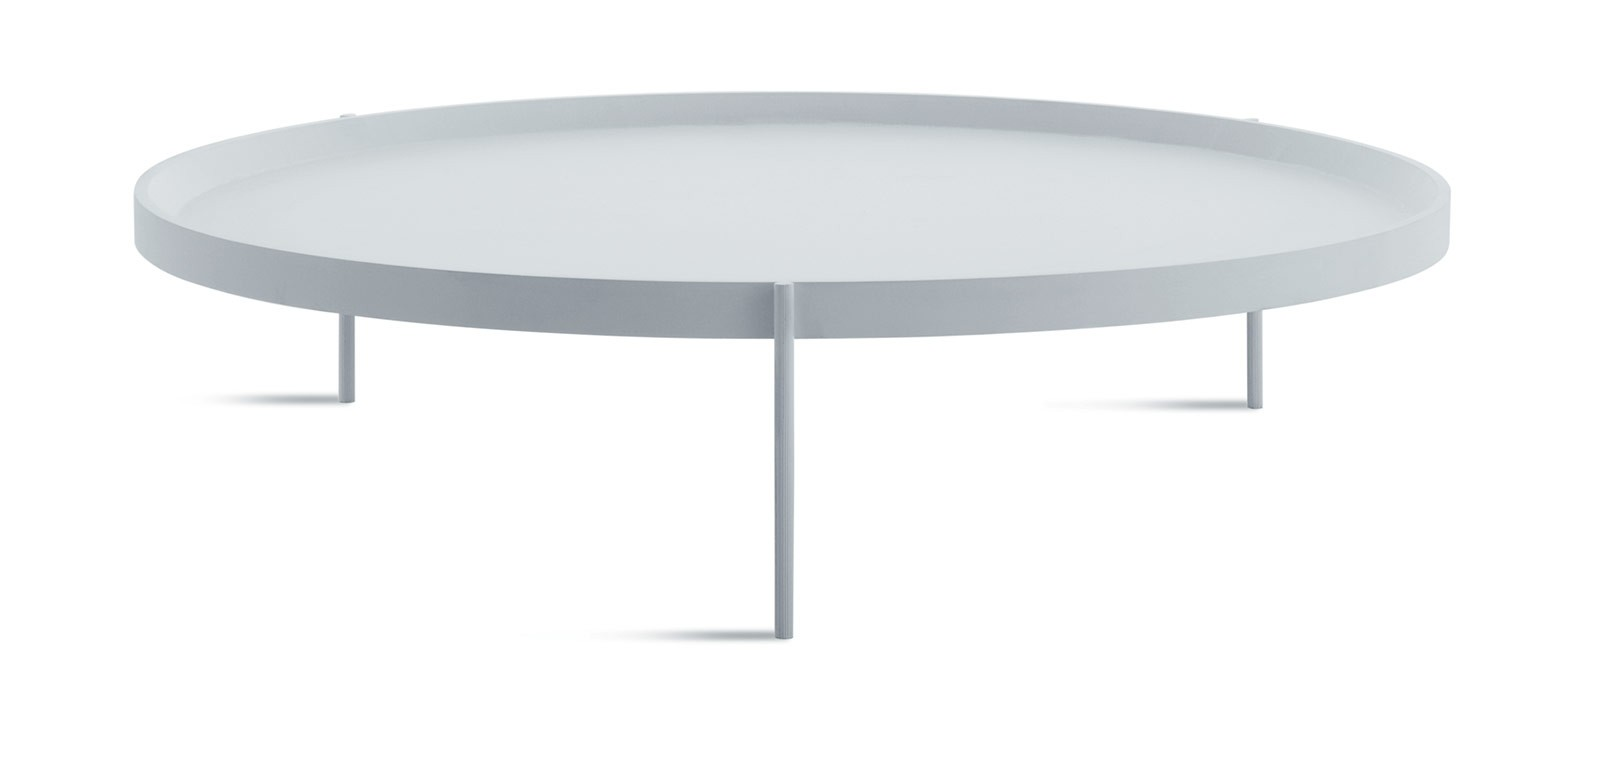 Pianca Abaco D.90 Table